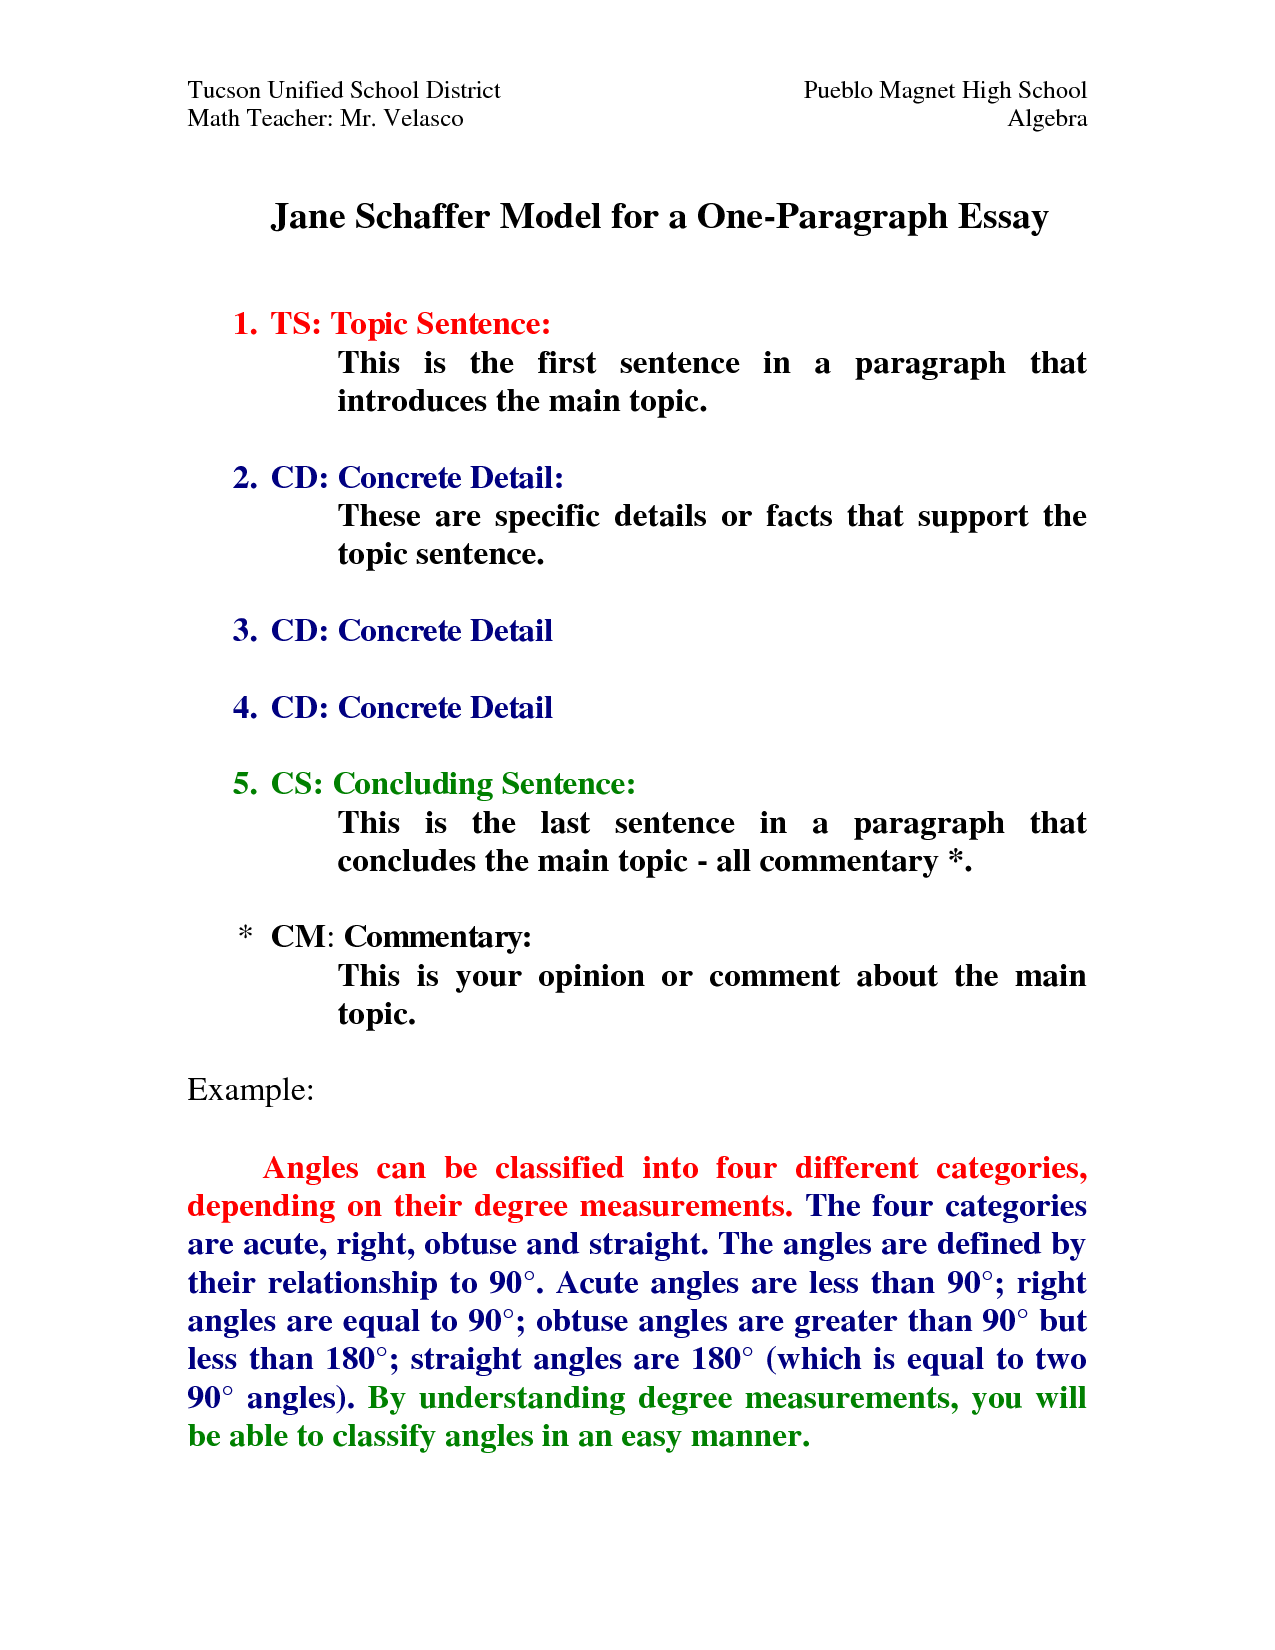 001 Essay Example One Awesome Paragraph About Dwarfism Topics Full